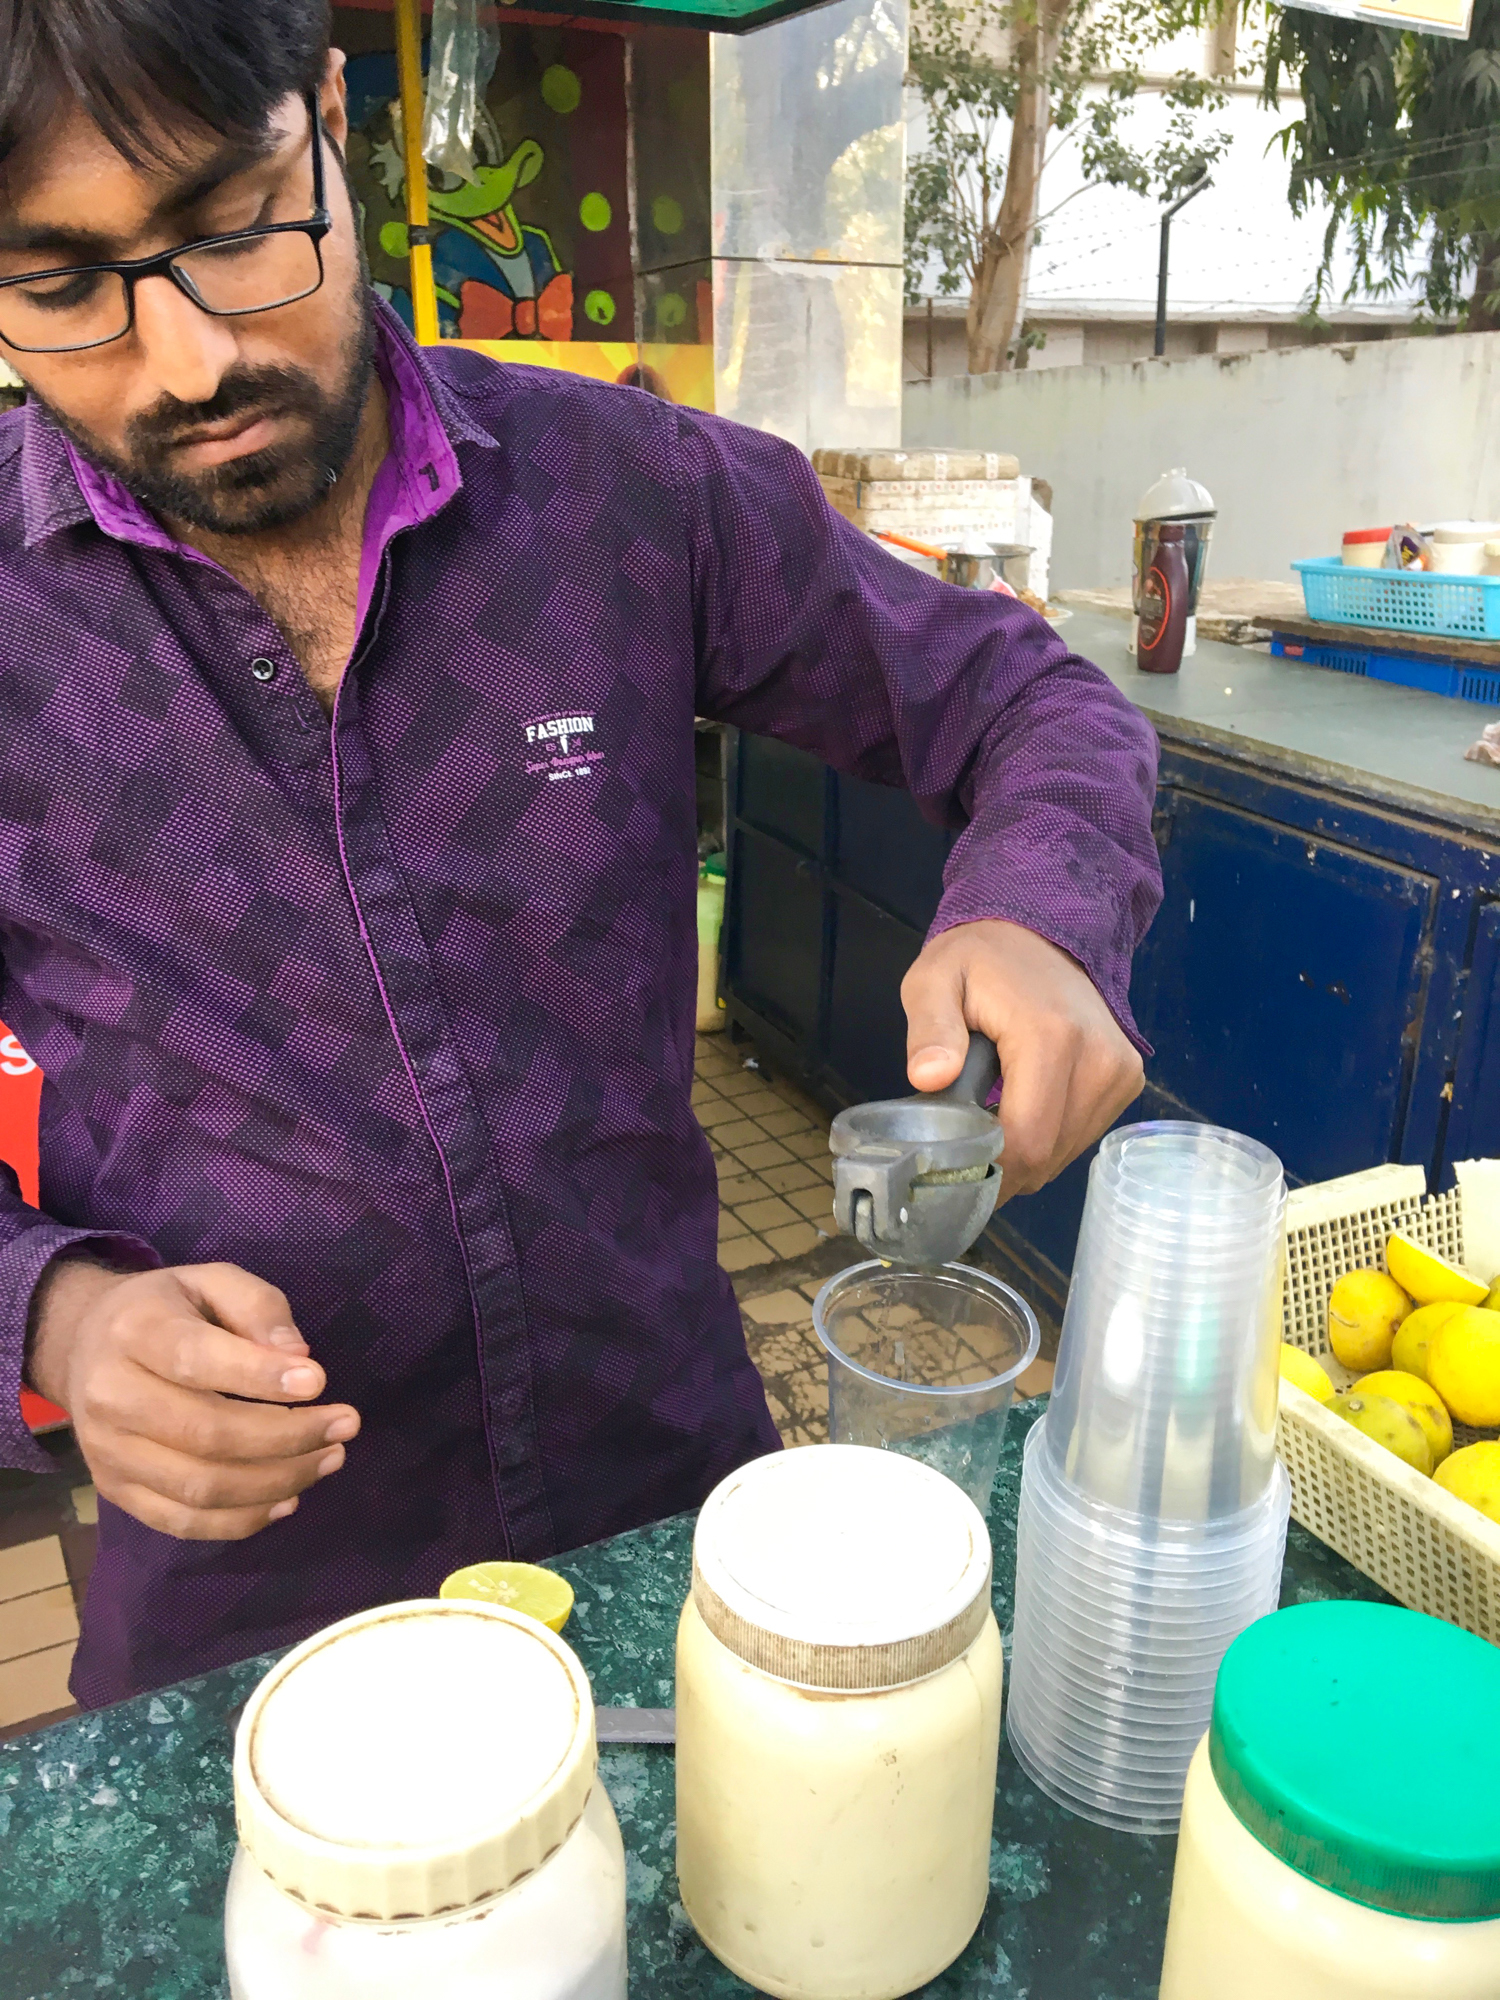 On A Hot Day, Indians Love To Sip A Spicy Soda That's A Bit Funky, Too